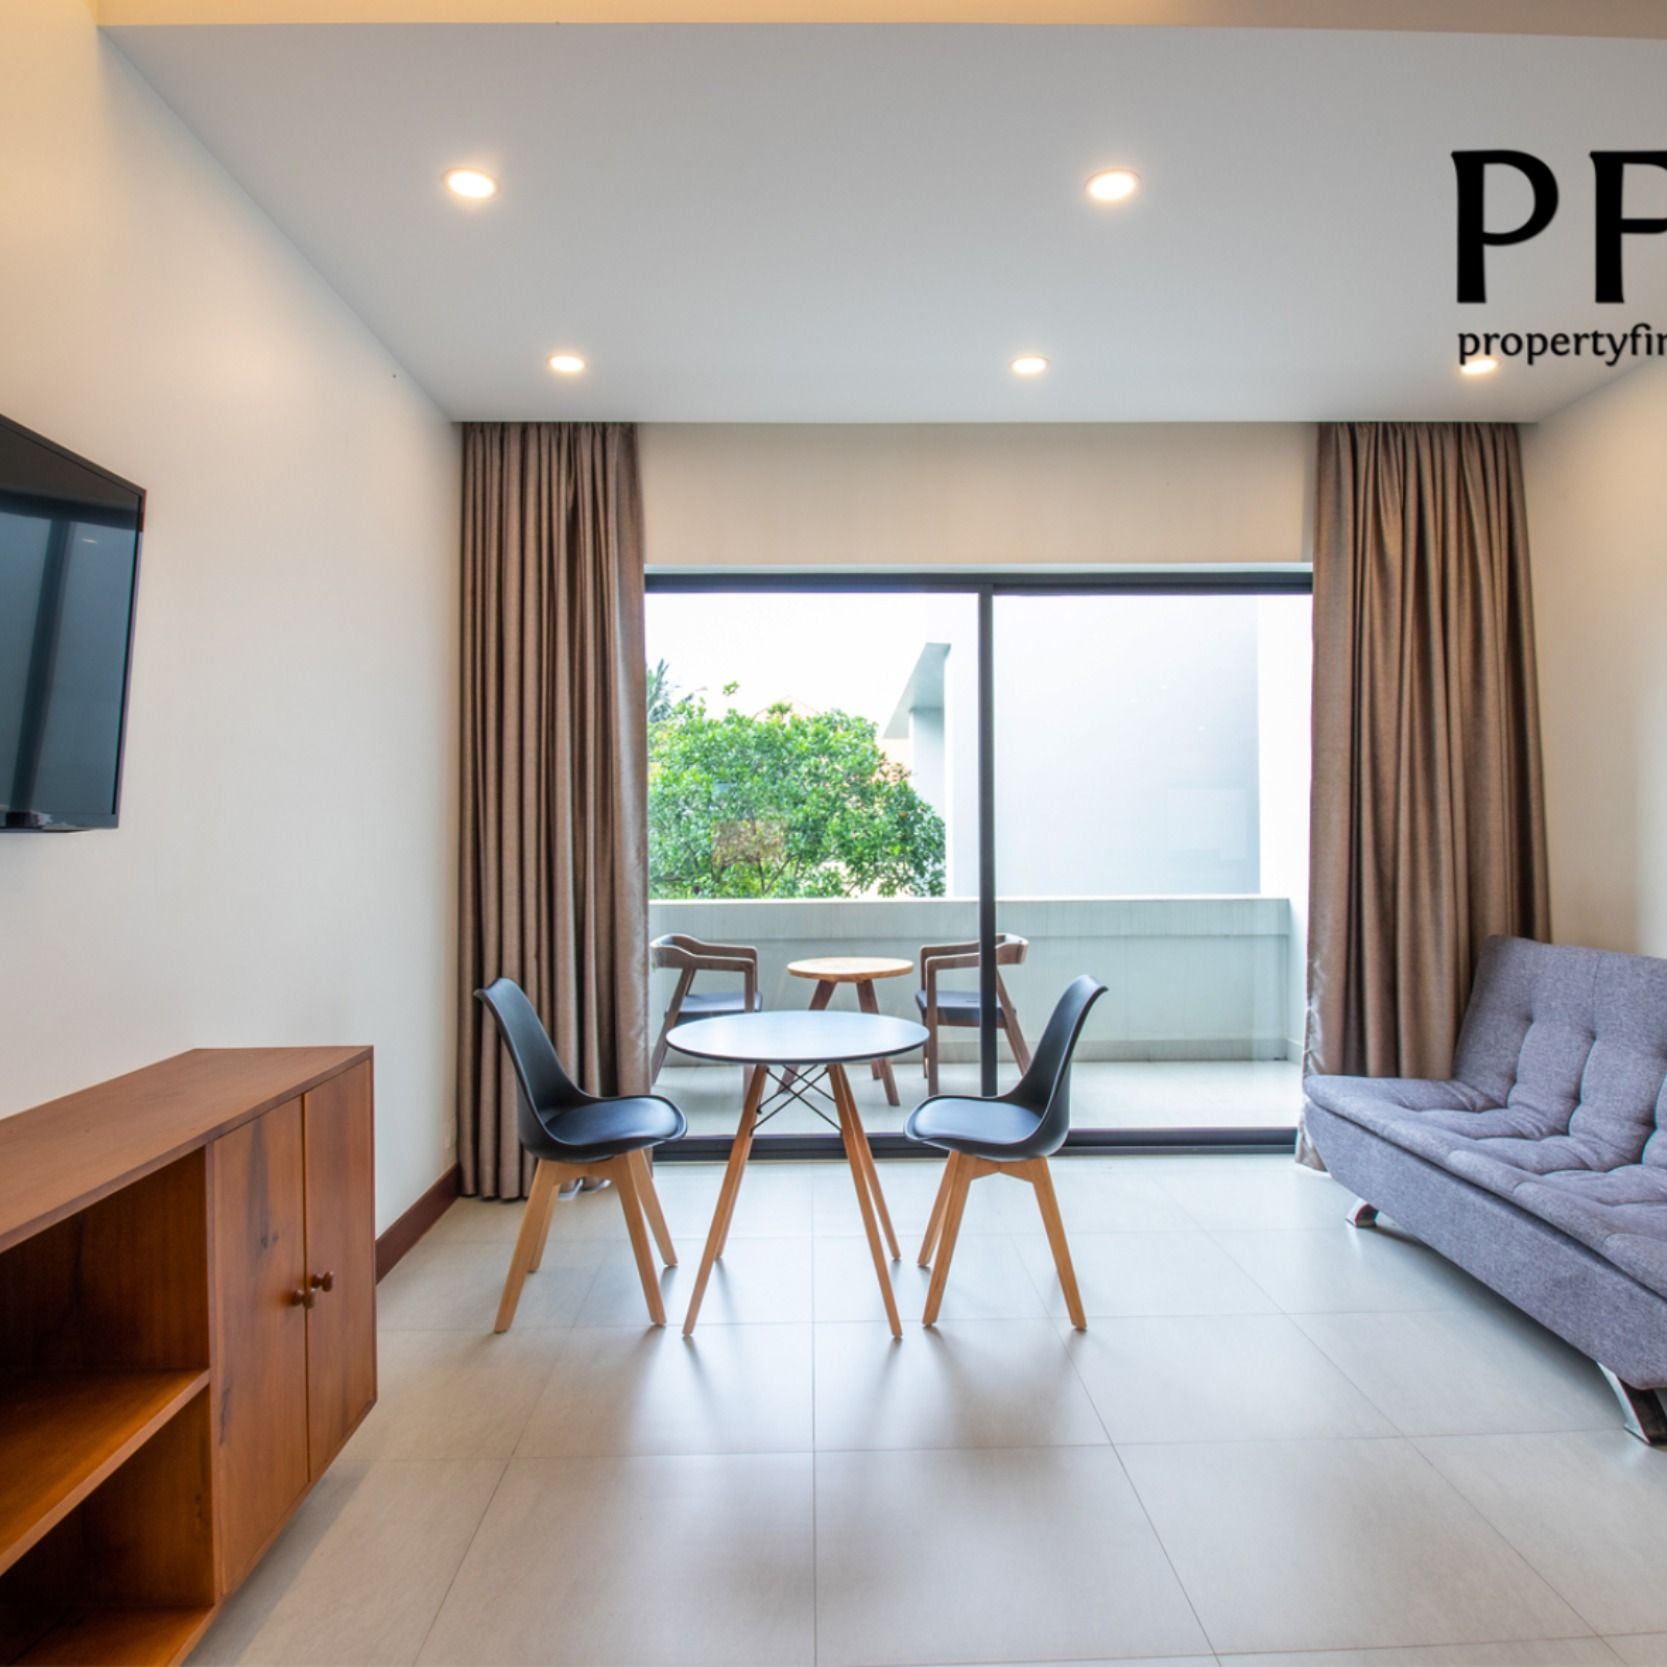 Modern 1Bedroom Apartment for Rent 1 bedroom apartment